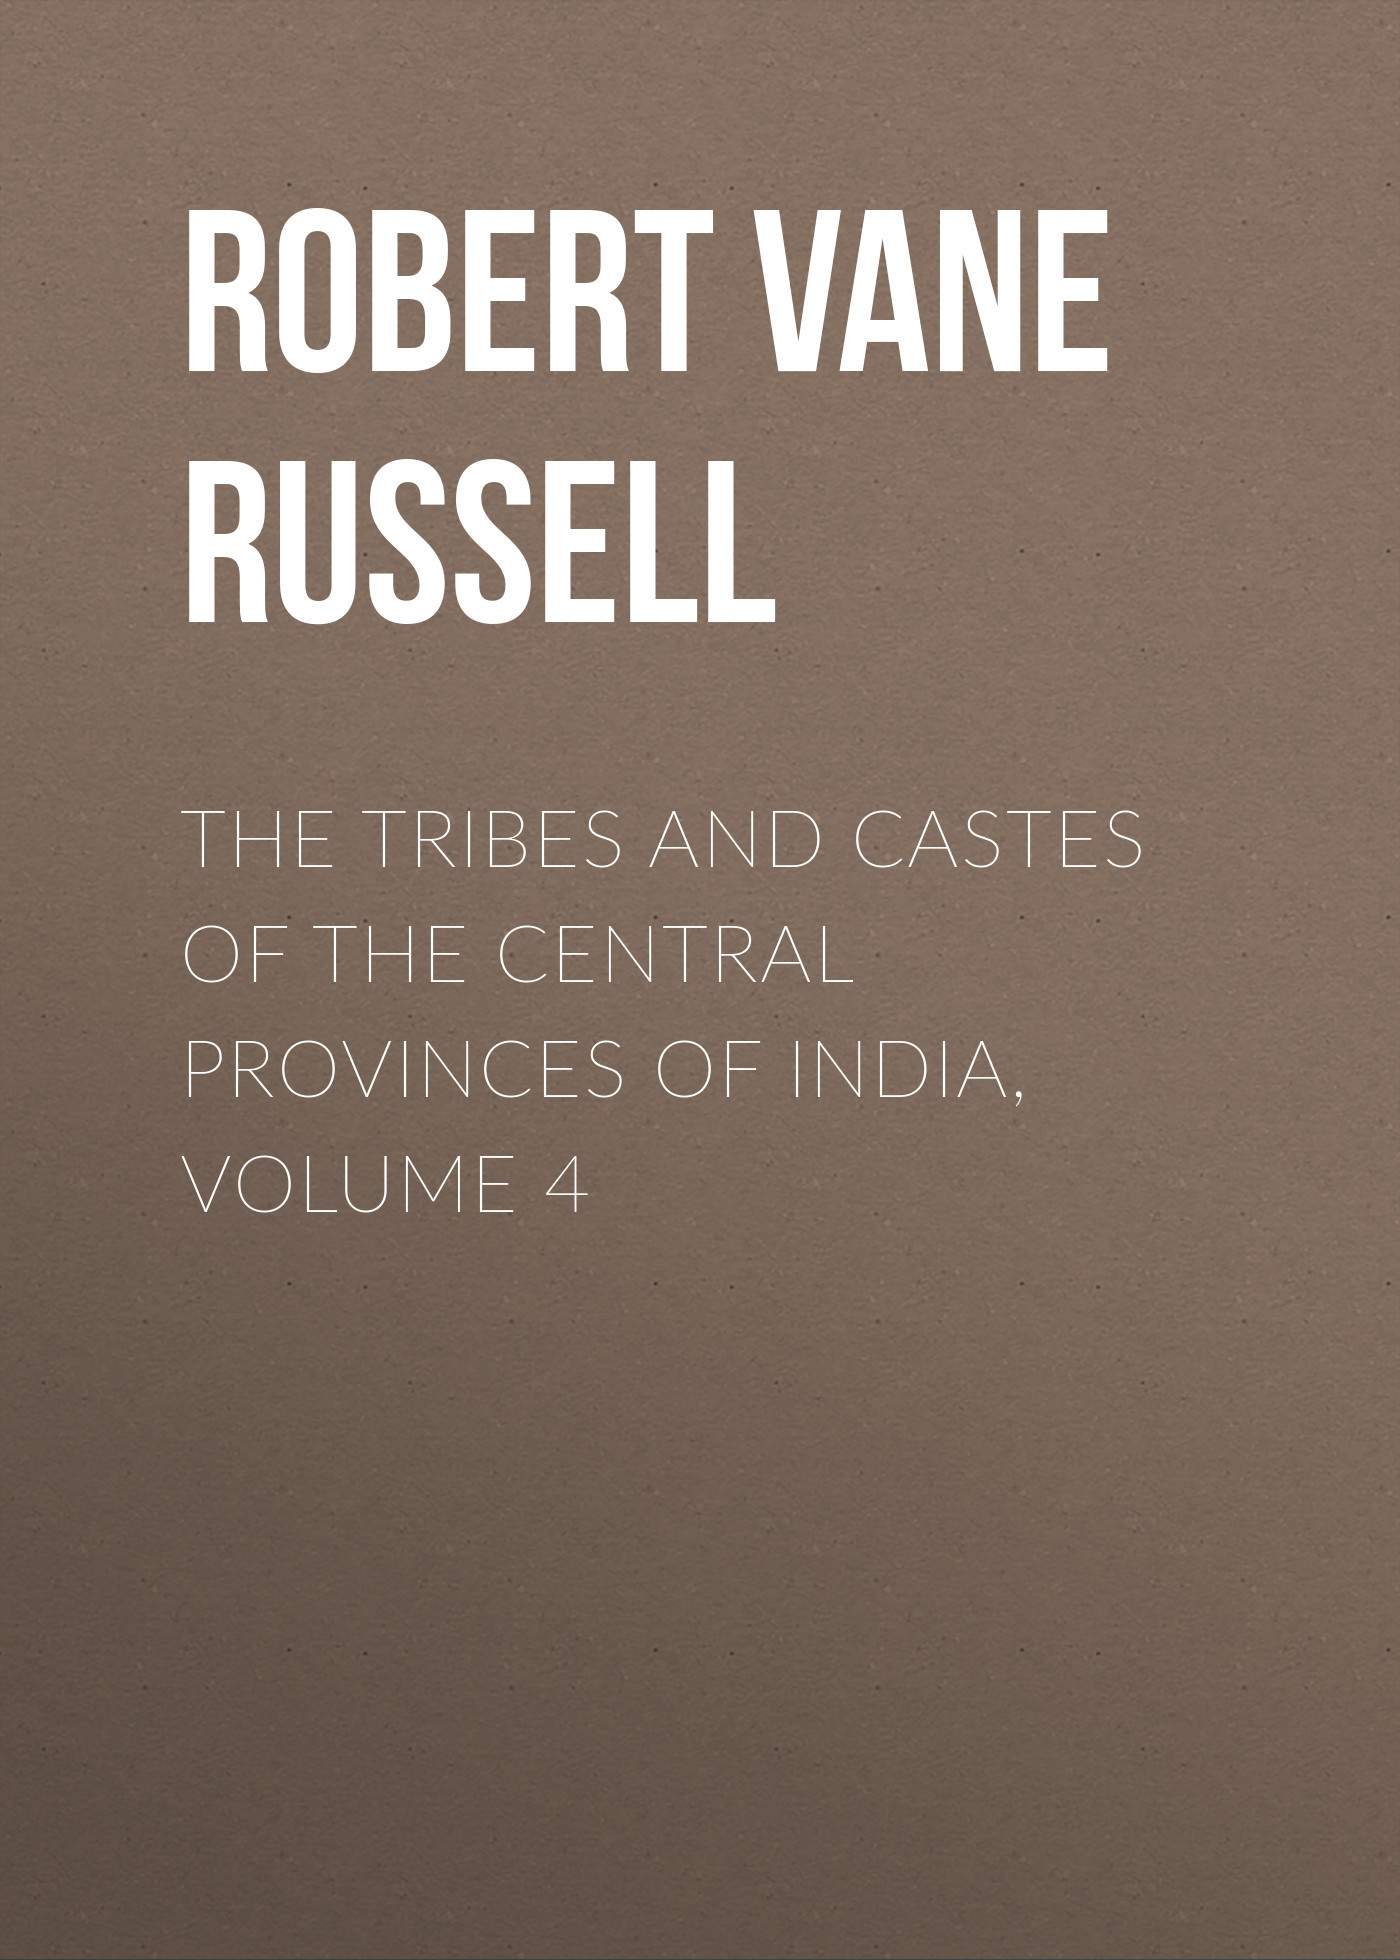 Robert Vane Russell The Tribes and Castes of the Central Provinces of India, Volume 4 hot sale video door phone intercom system 7 inch color lcd monitor video intercom night vision alloy waterproof door camera